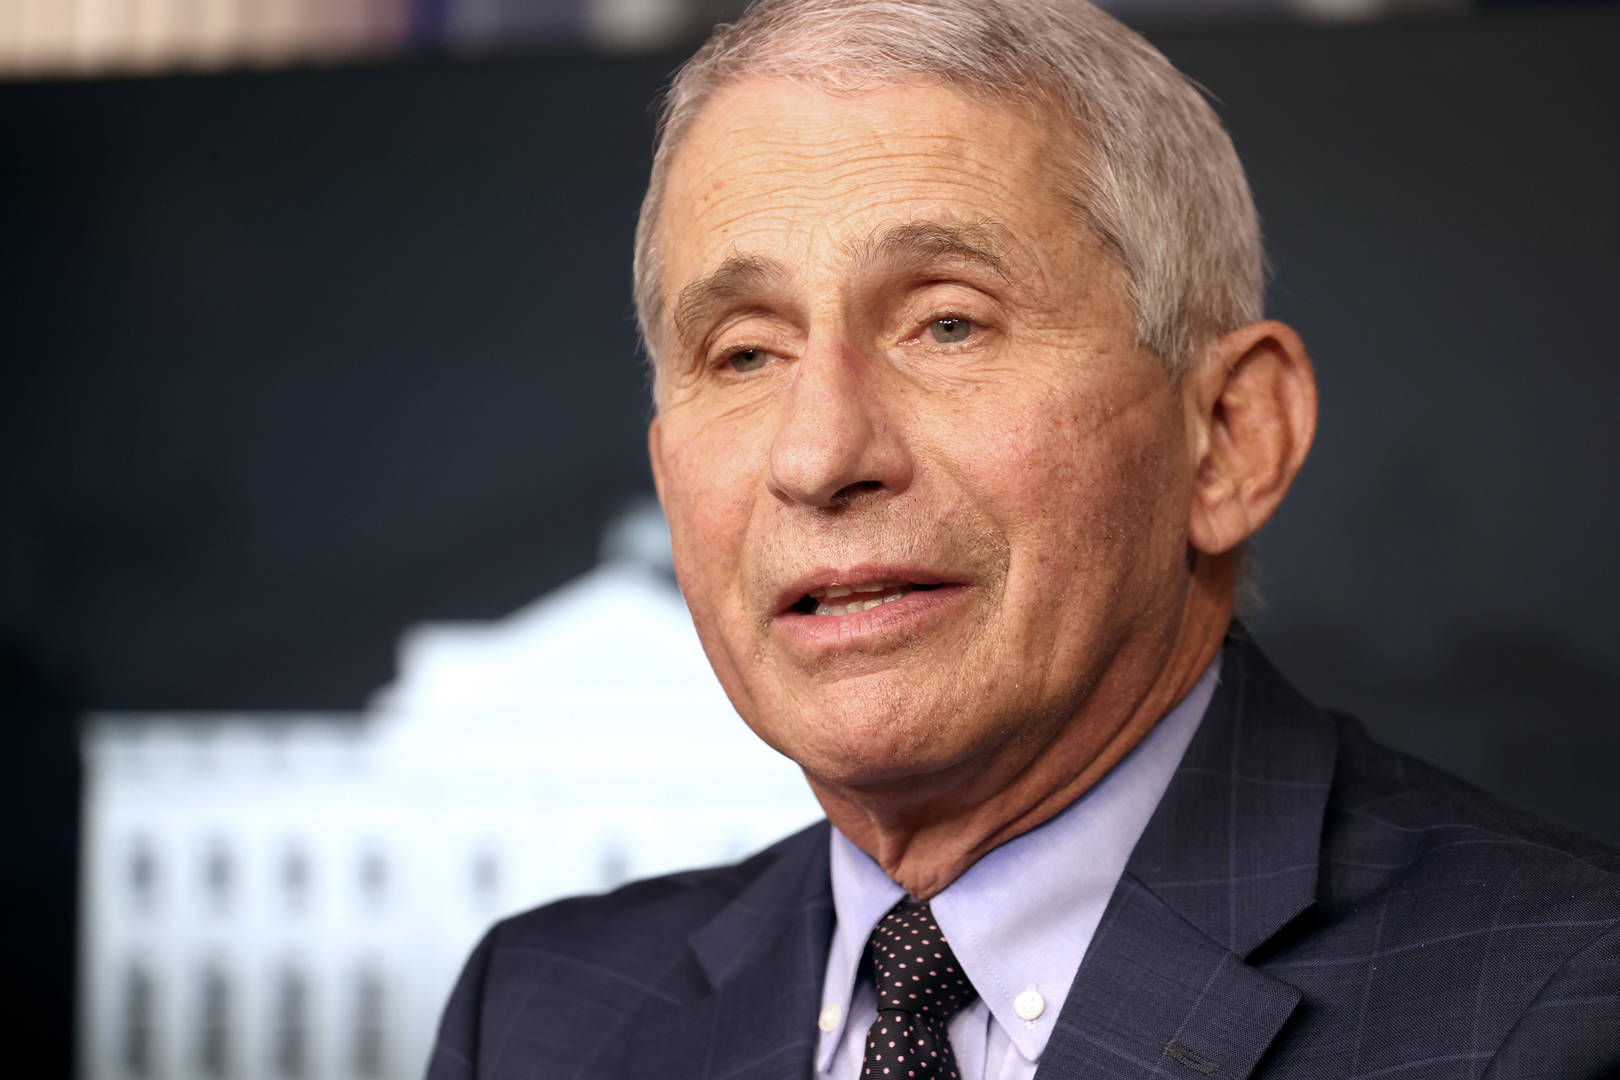 Fauci: Trump Wanted Me to 'Be More Positive' in Coronavirus Outlook